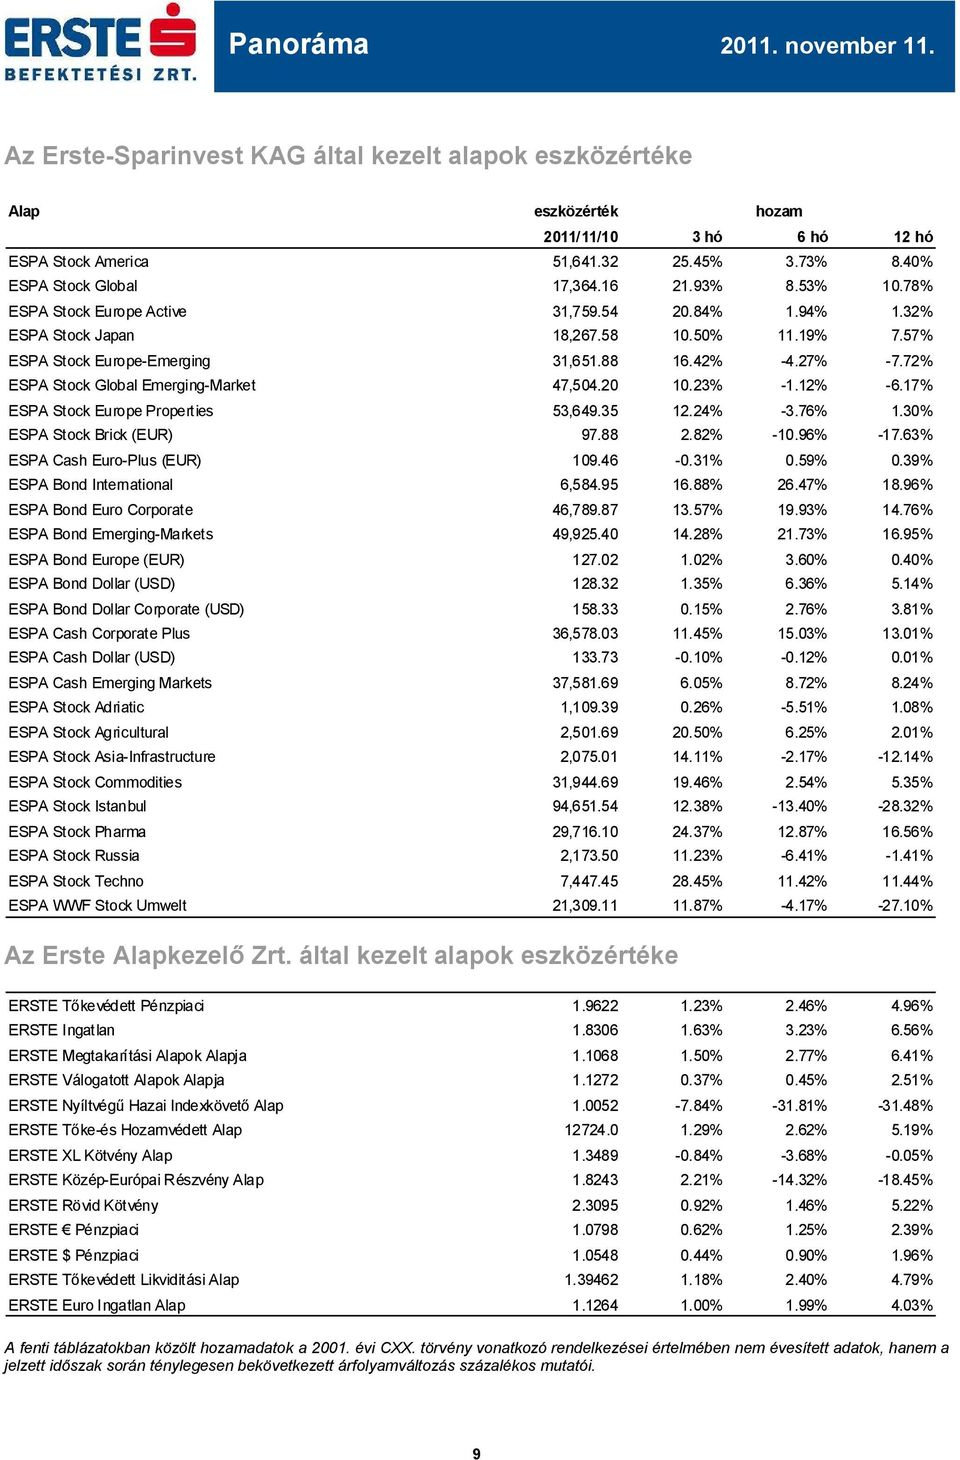 72% ESPA Stock Global Emerging-Market 47,54.2 1.23% -1.12% -6.17% ESPA Stock Europe Properties 53,649.35 12.24% -3.76% 1.3% ESPA Stock Brick (EUR) 97.88 2.82% -1.96% -17.